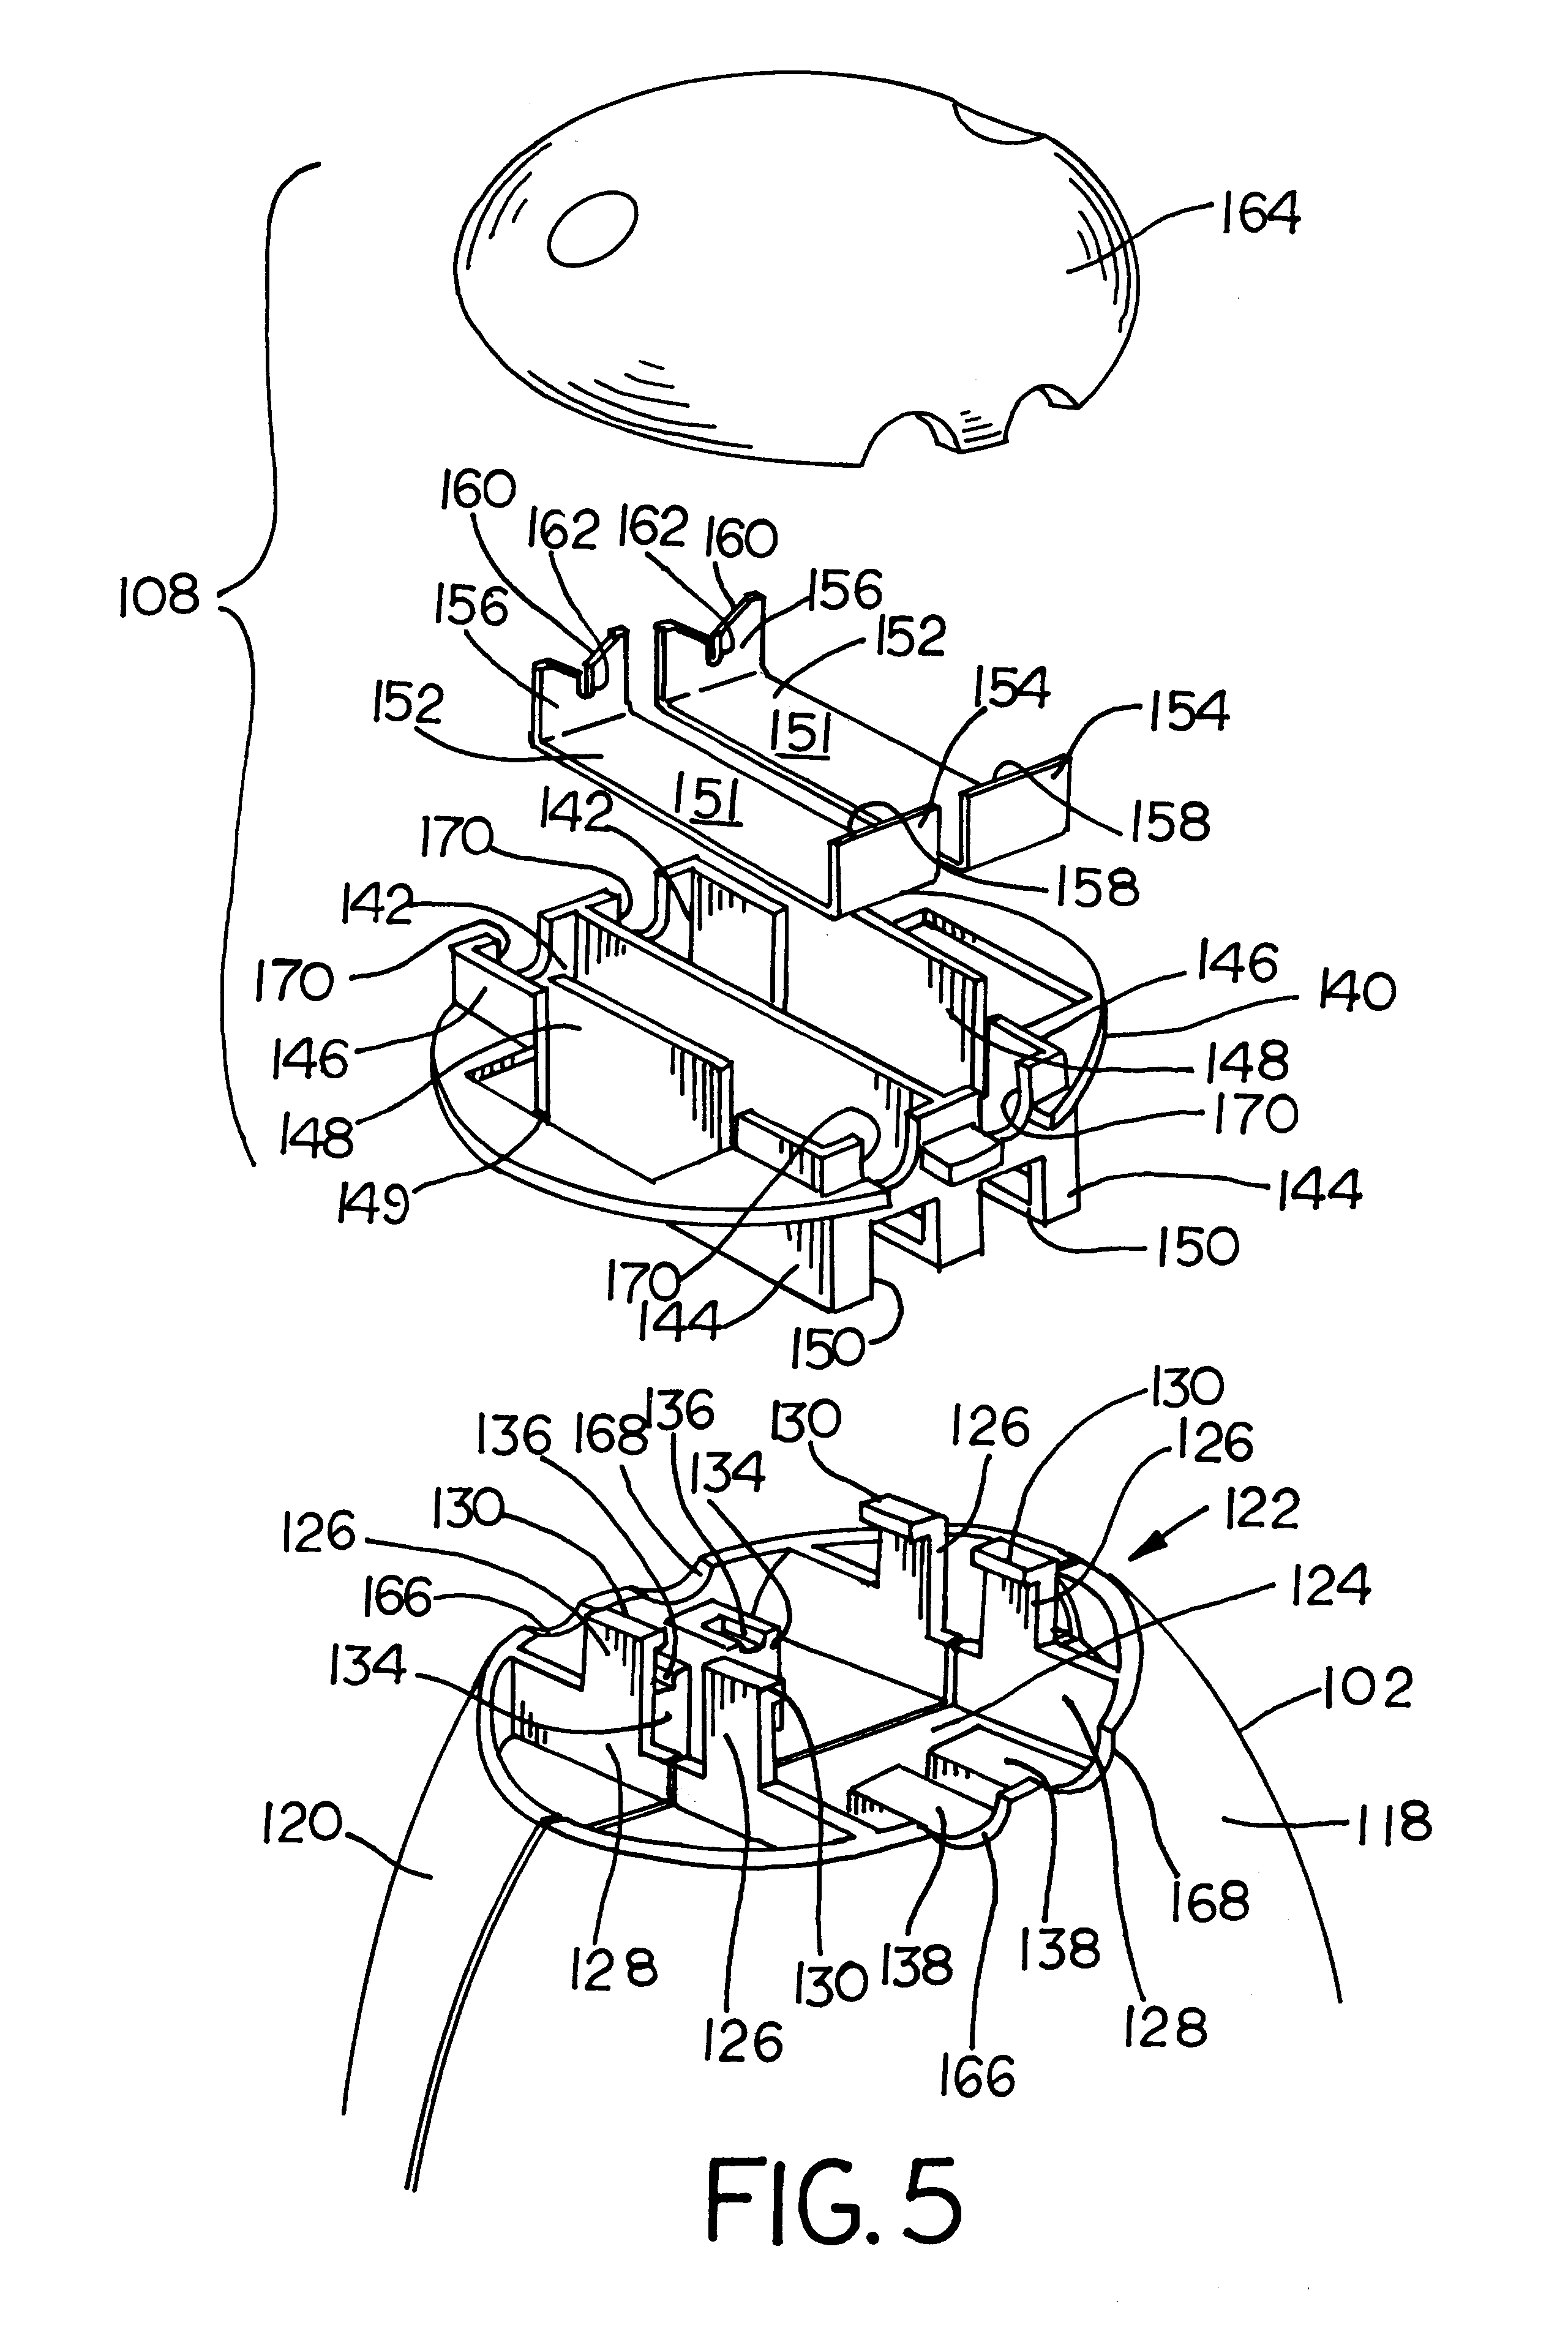 US06211790 20010403 D00005 typical fire alarm diagram fire alarm section fire alarm print,Fire Alarm Circuit Wiring